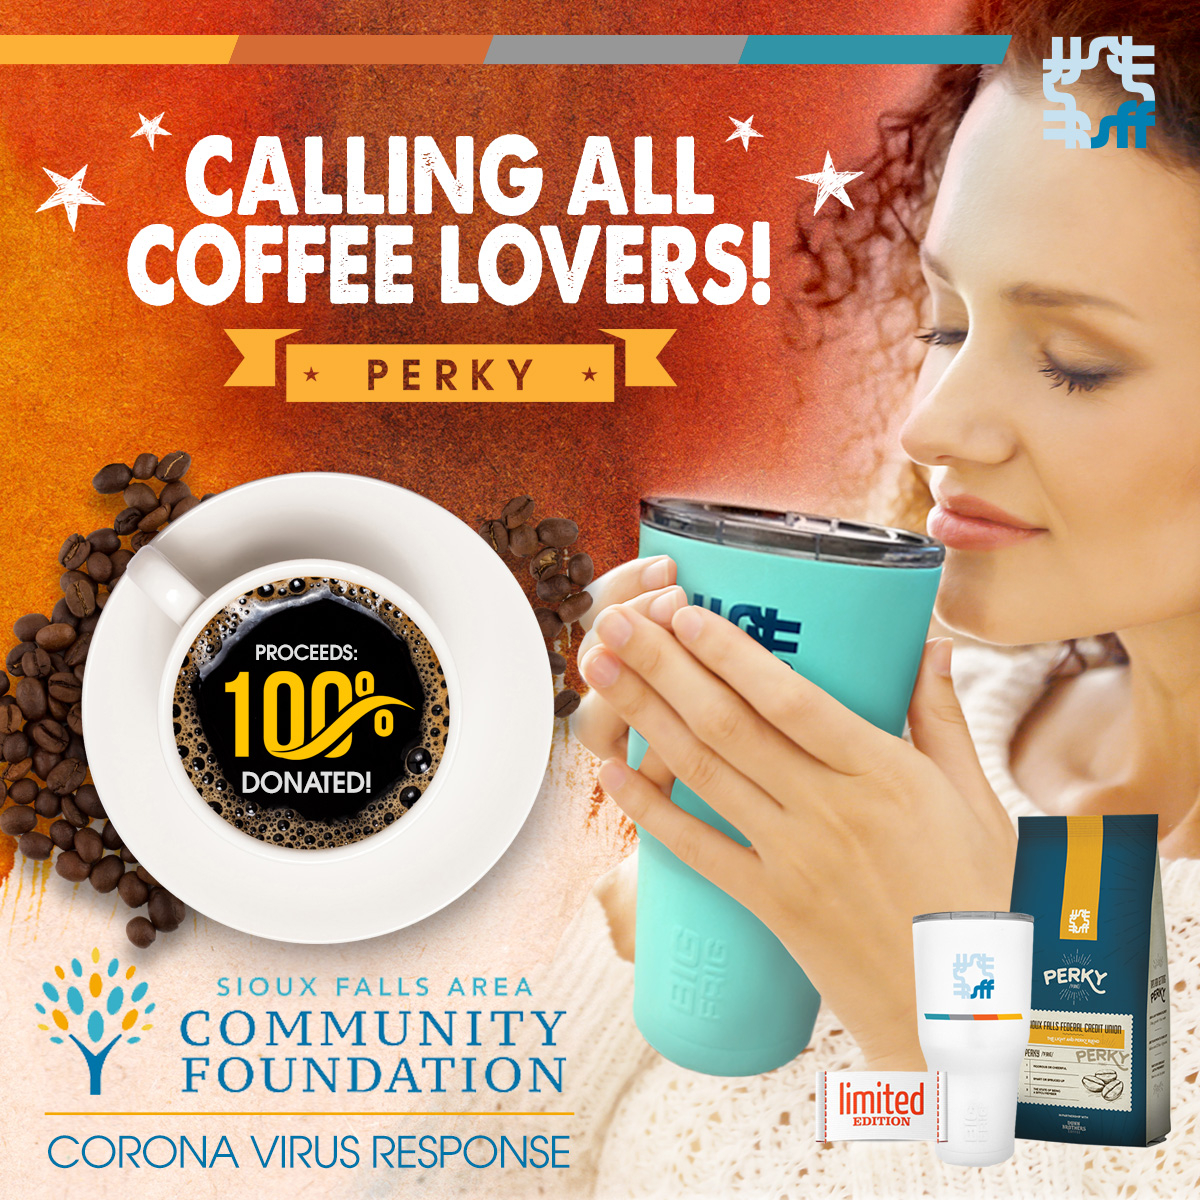 Help your neighbors by picking up a bag of coffee or mug at Sioux Falls FCU! White mugs now in as a limited edition!  >>> 100% of all proceeds will go to local Covid-19 Relief with One Sioux Falls Fund.   Learn more: https://siouxfallsfcu.org/contact/about/giving-back/perky…  #InThisTogether #PerksNationpic.twitter.com/qCtReb70xl